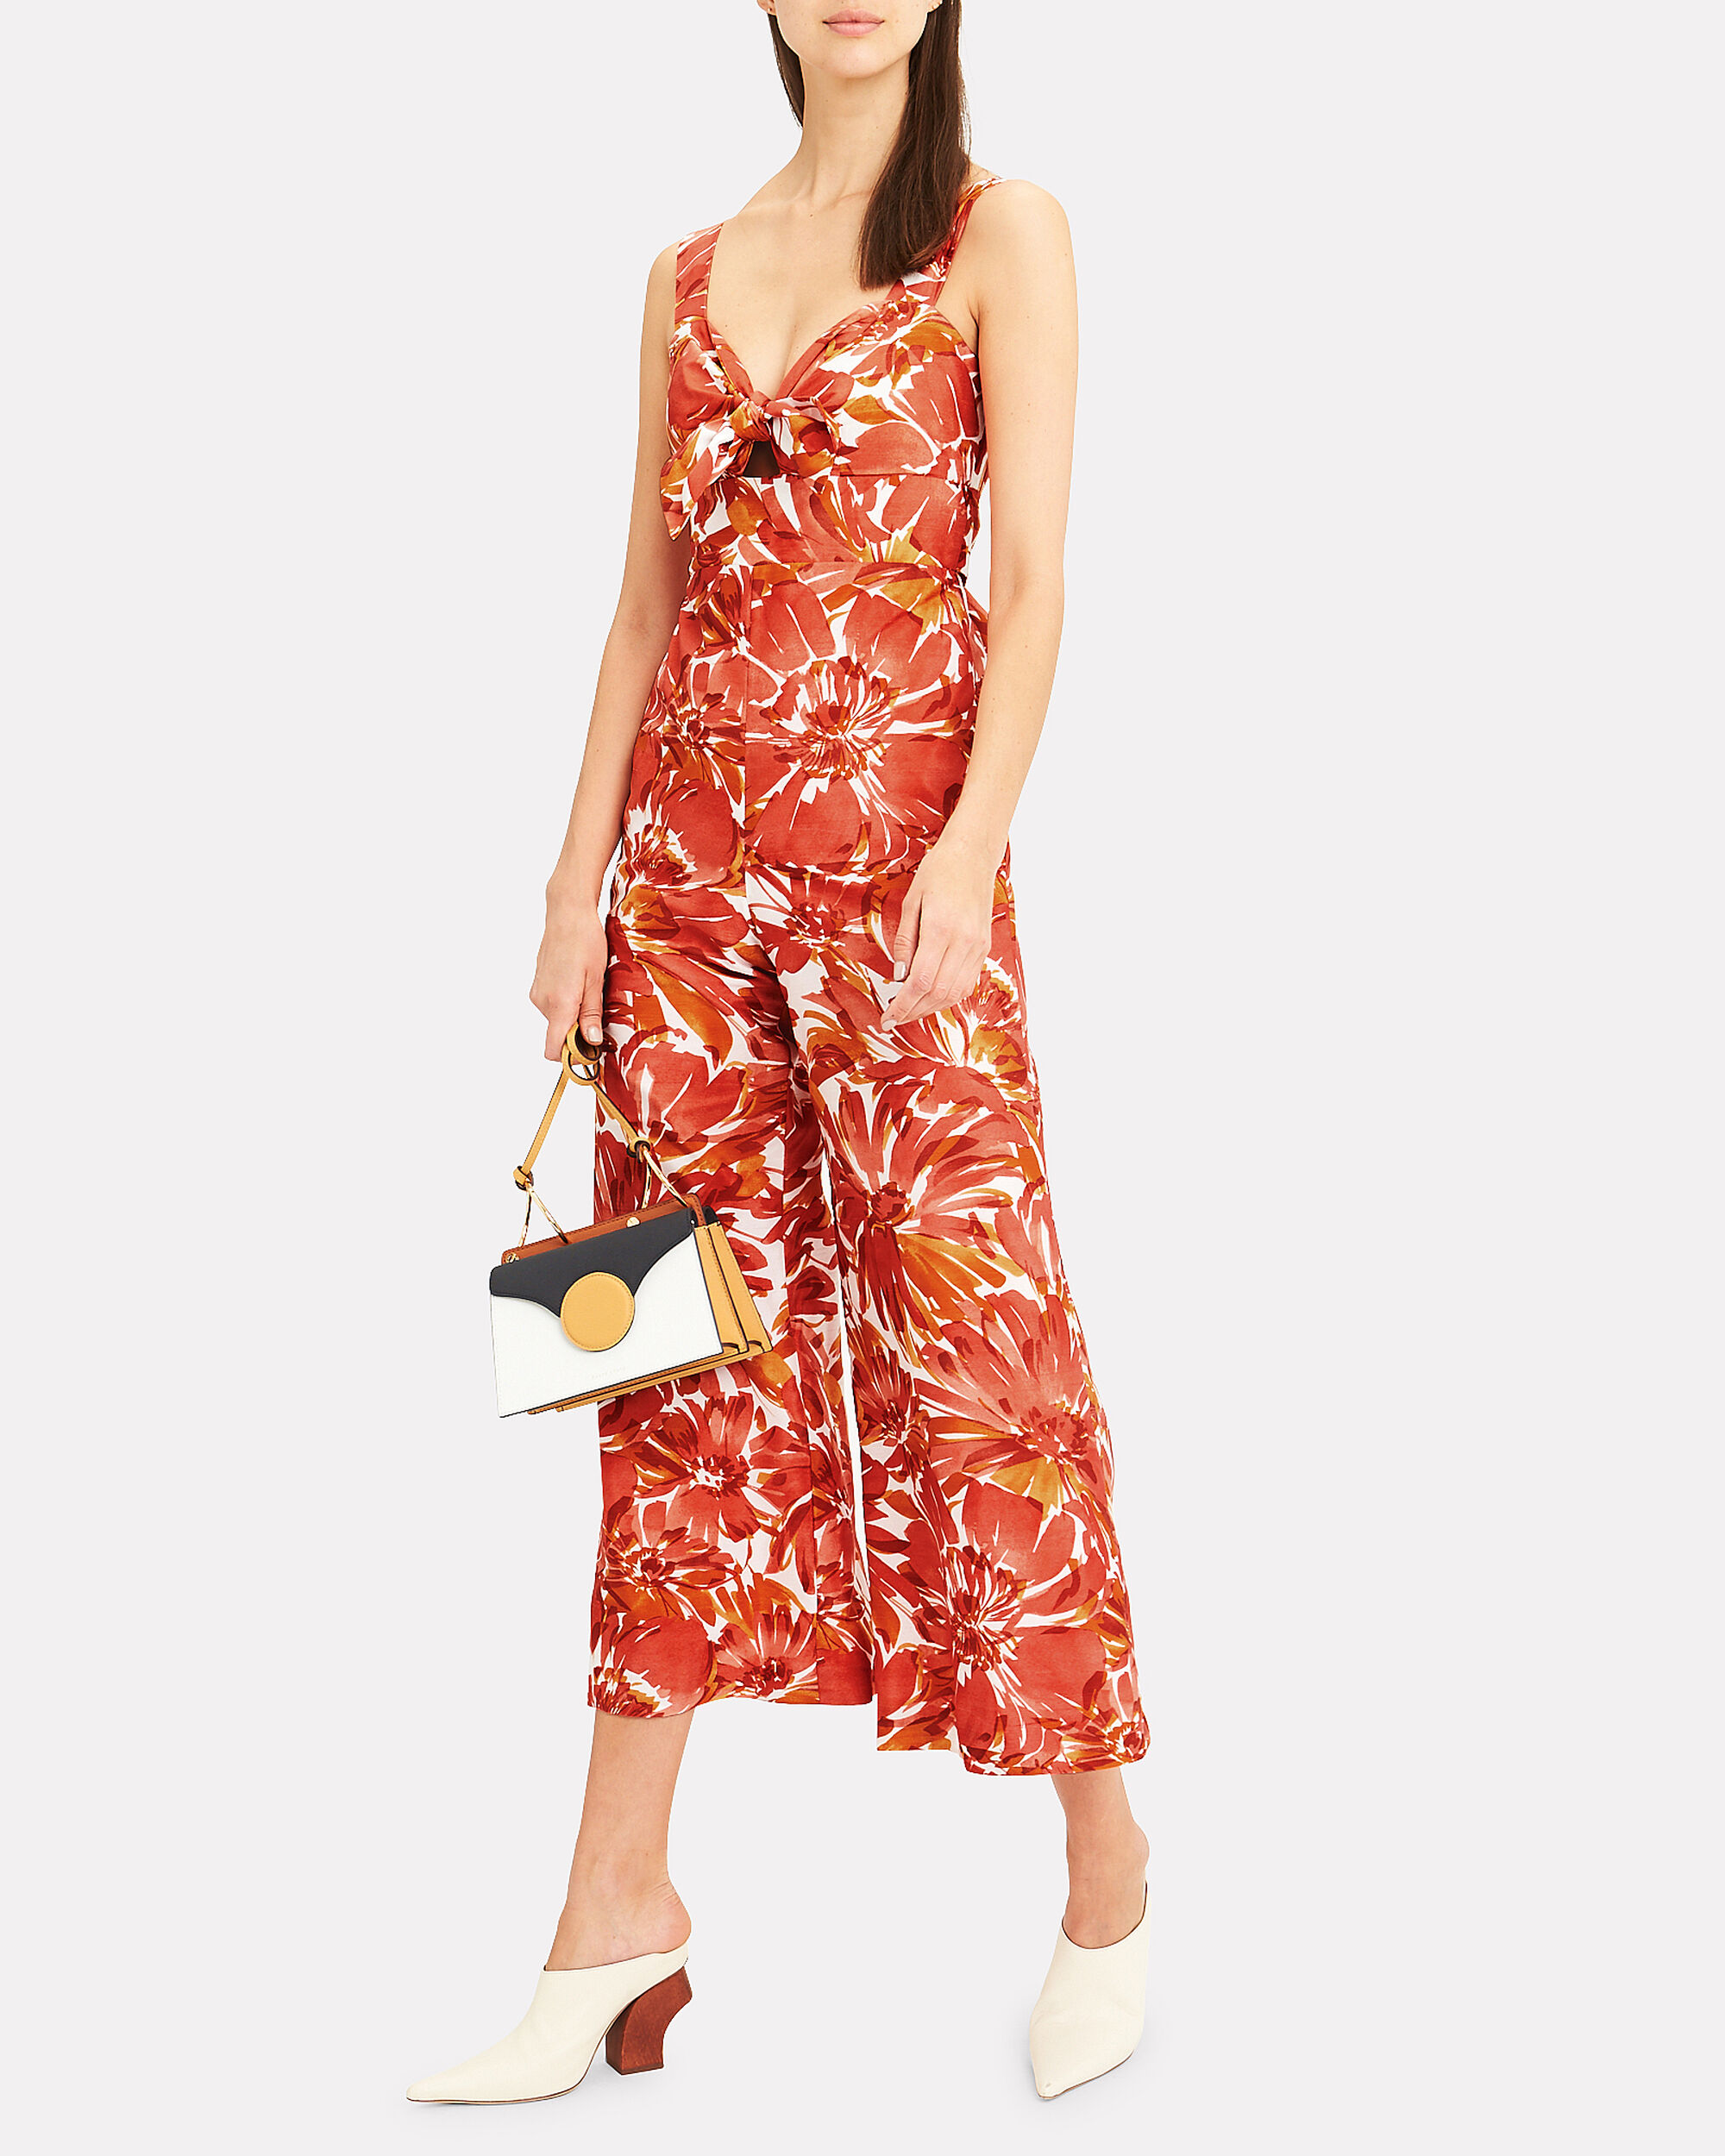 Bermusa Watercolor Jumpsuit, ORANGE/RED/WHITE, hi-res